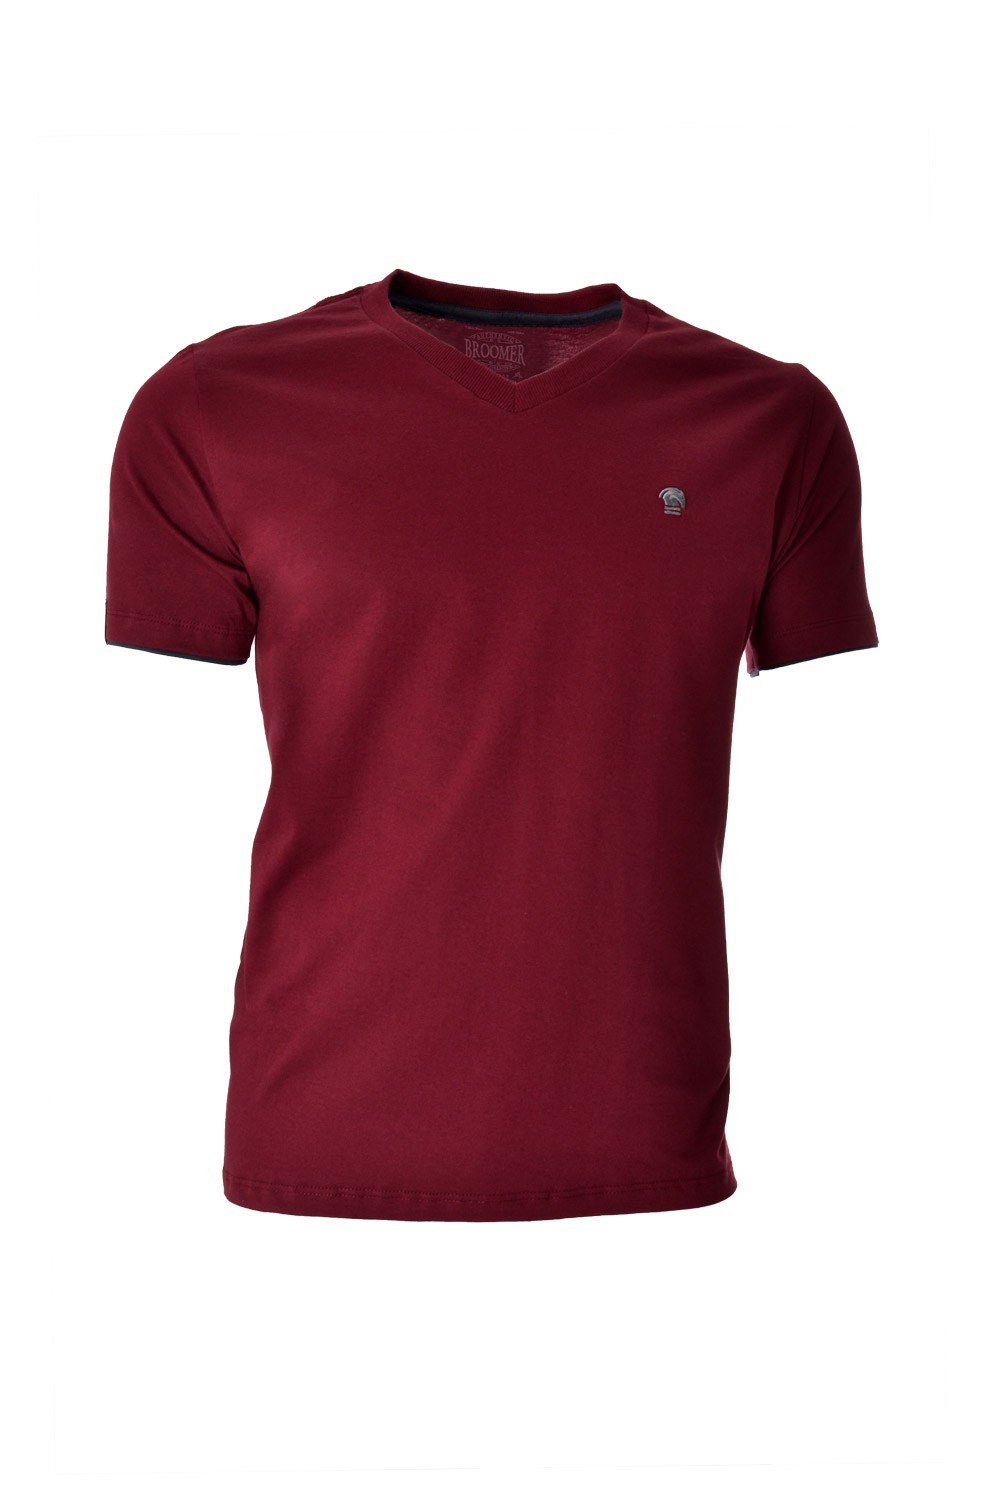 CAMISETA MC BLUES SUPER SLIM ALGODAO GOLA V LISO BORDO